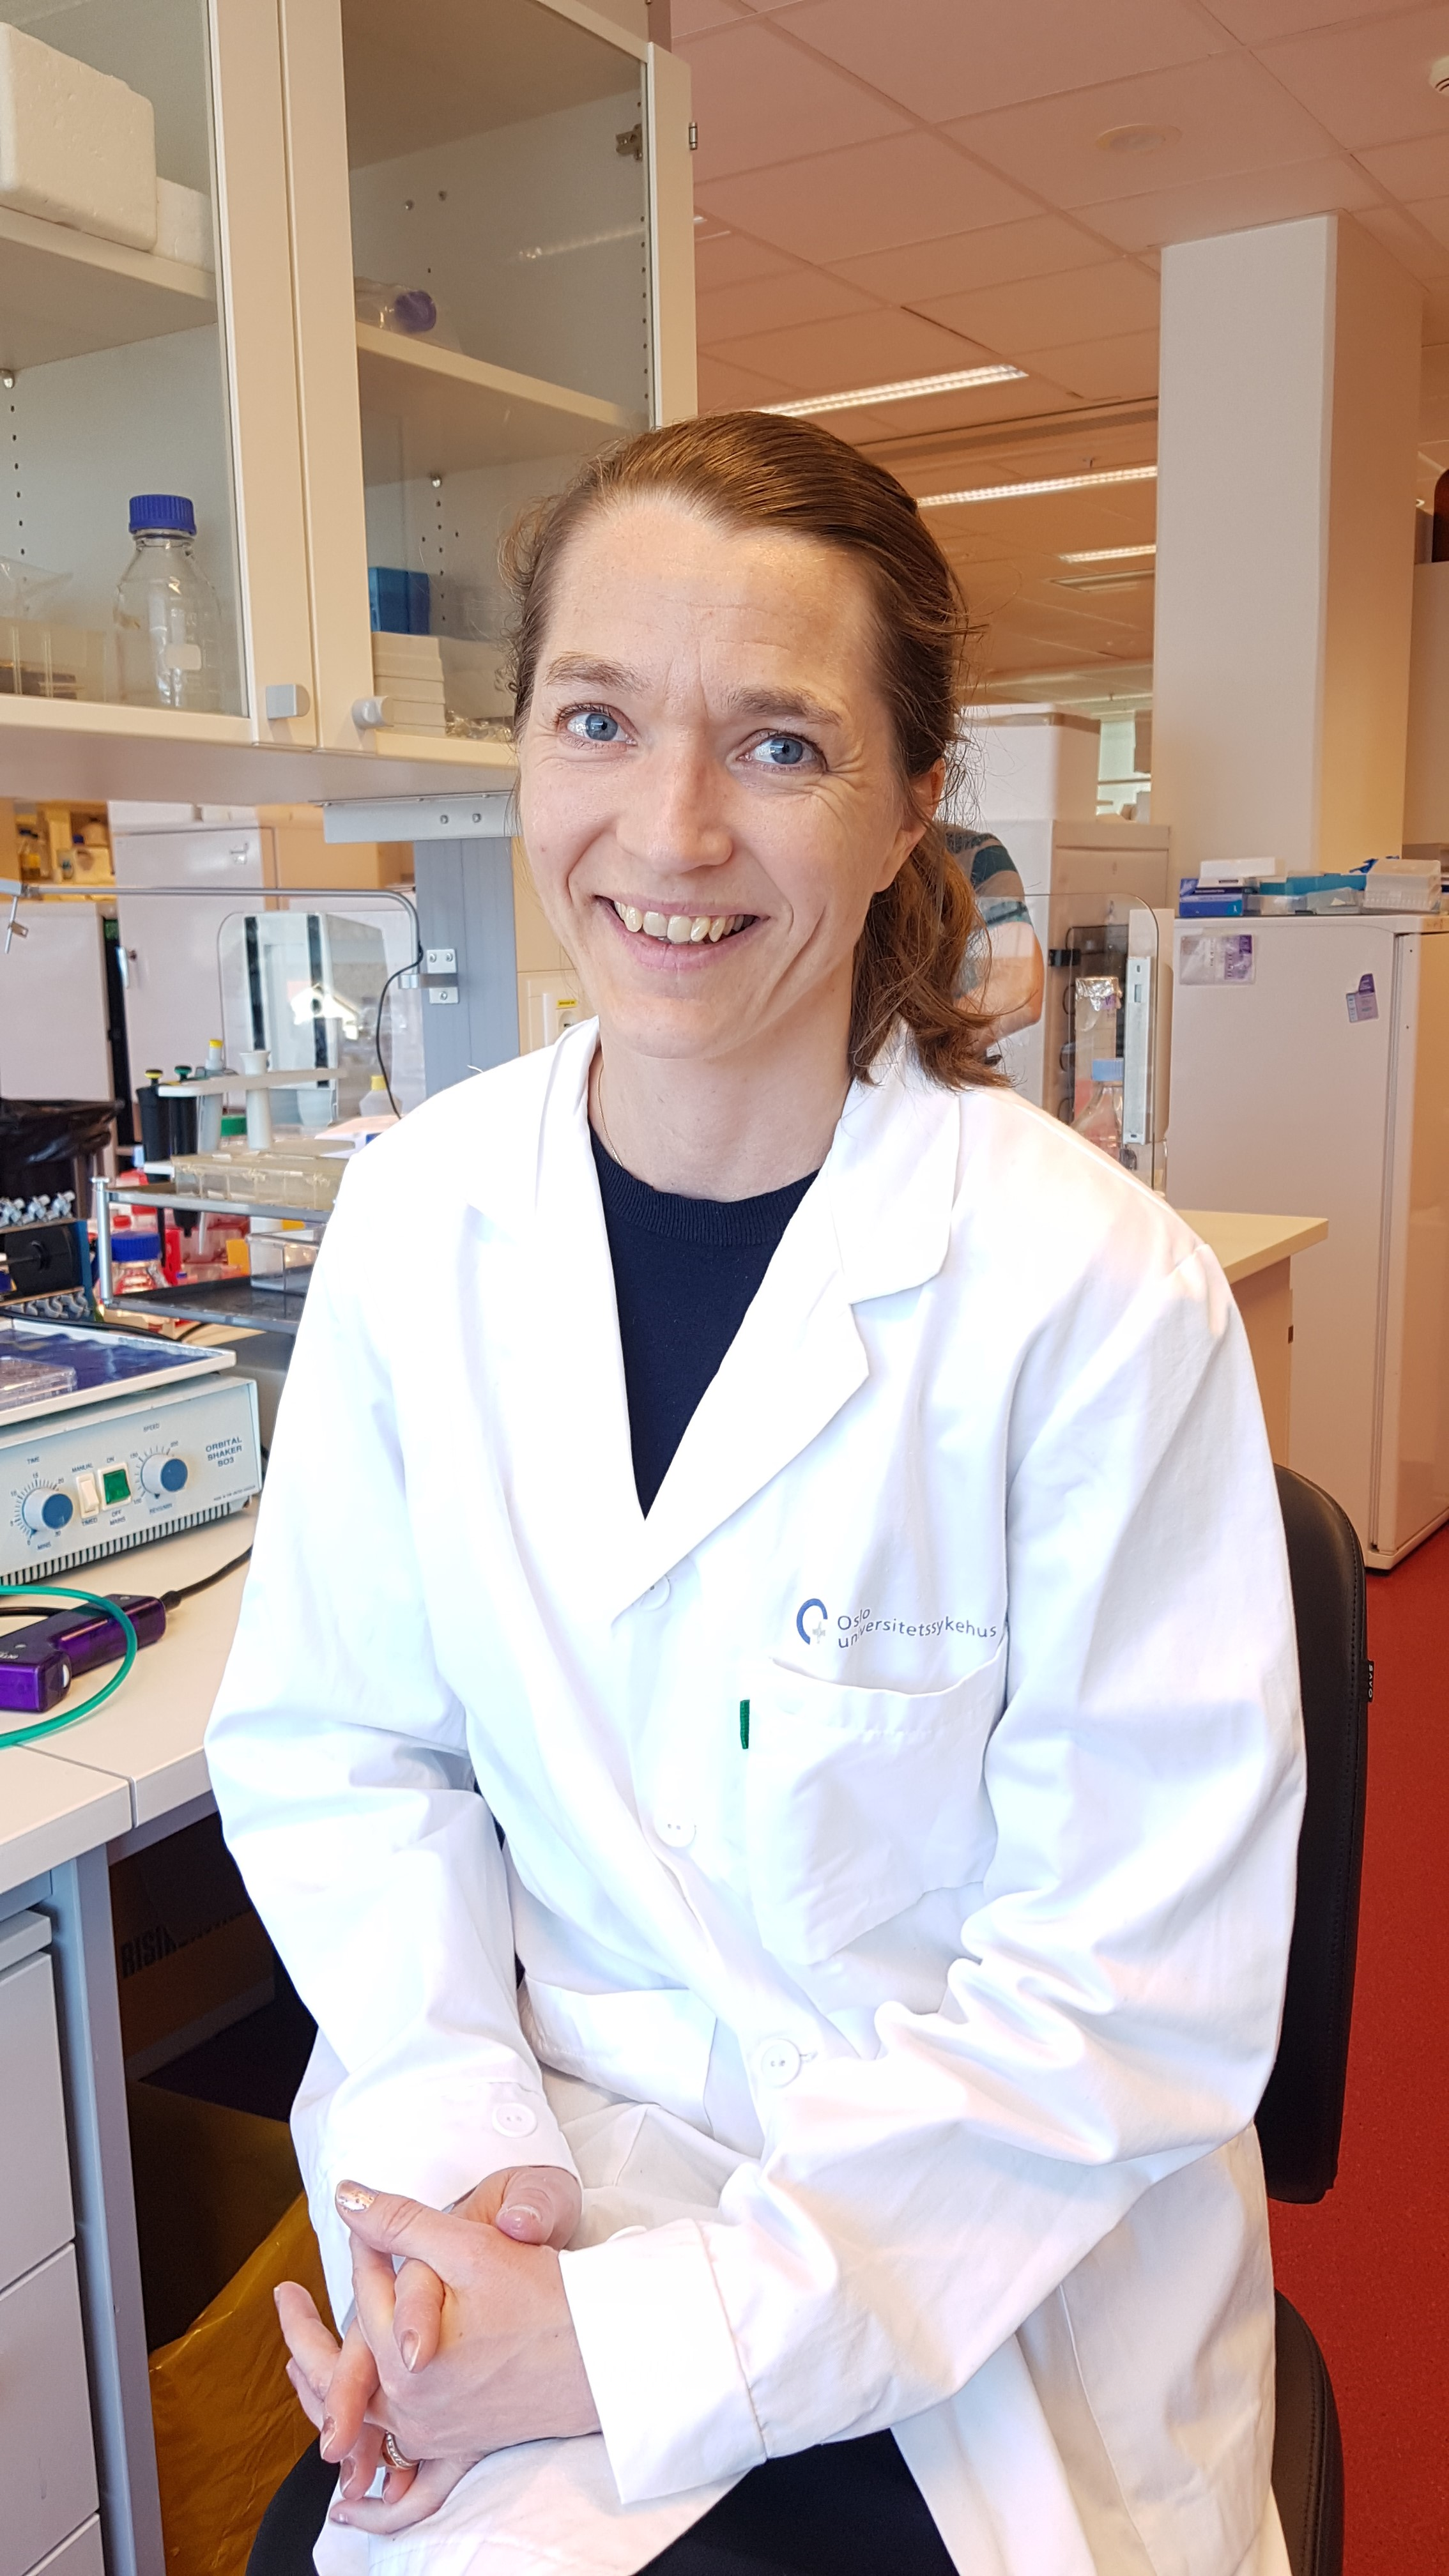 Kaisa Haglund is a project leader in Harald Stenmark' group Cancer Membrane Dynamics